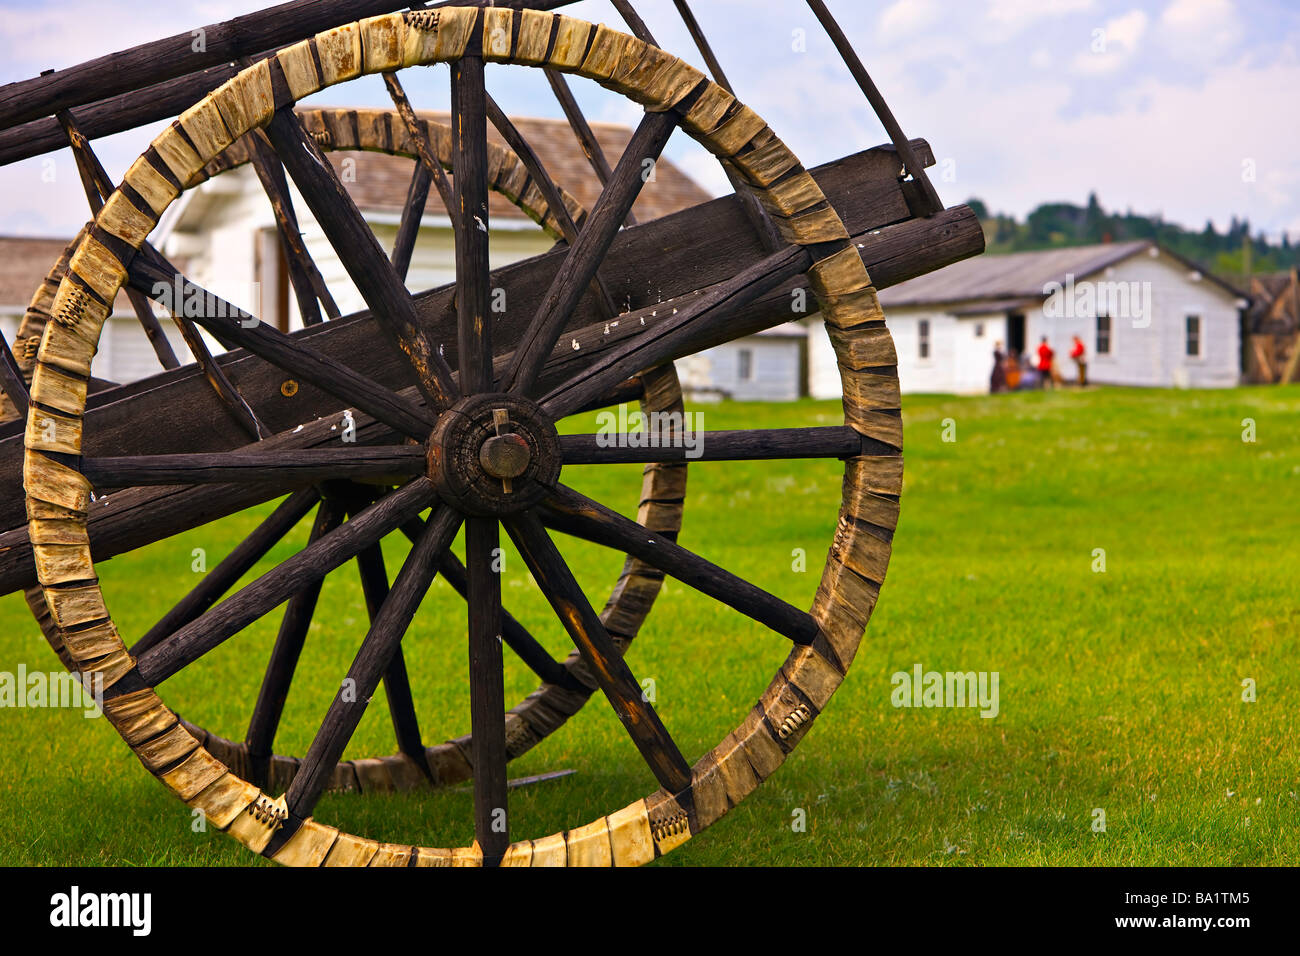 Spoked wheels of a Red River cart with tires made of shaganappi